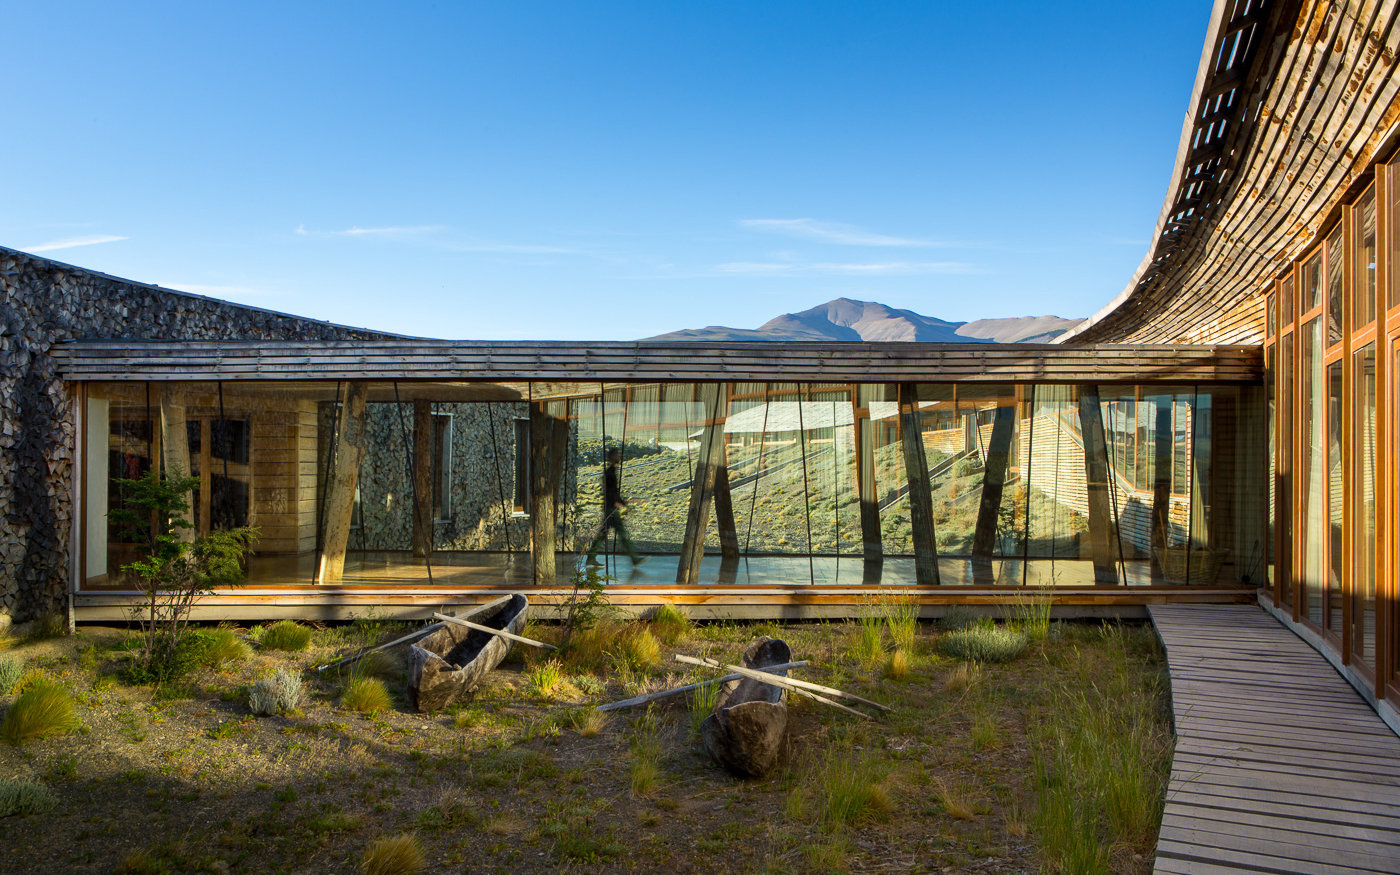 Tierra Patagonia Hotel Chile